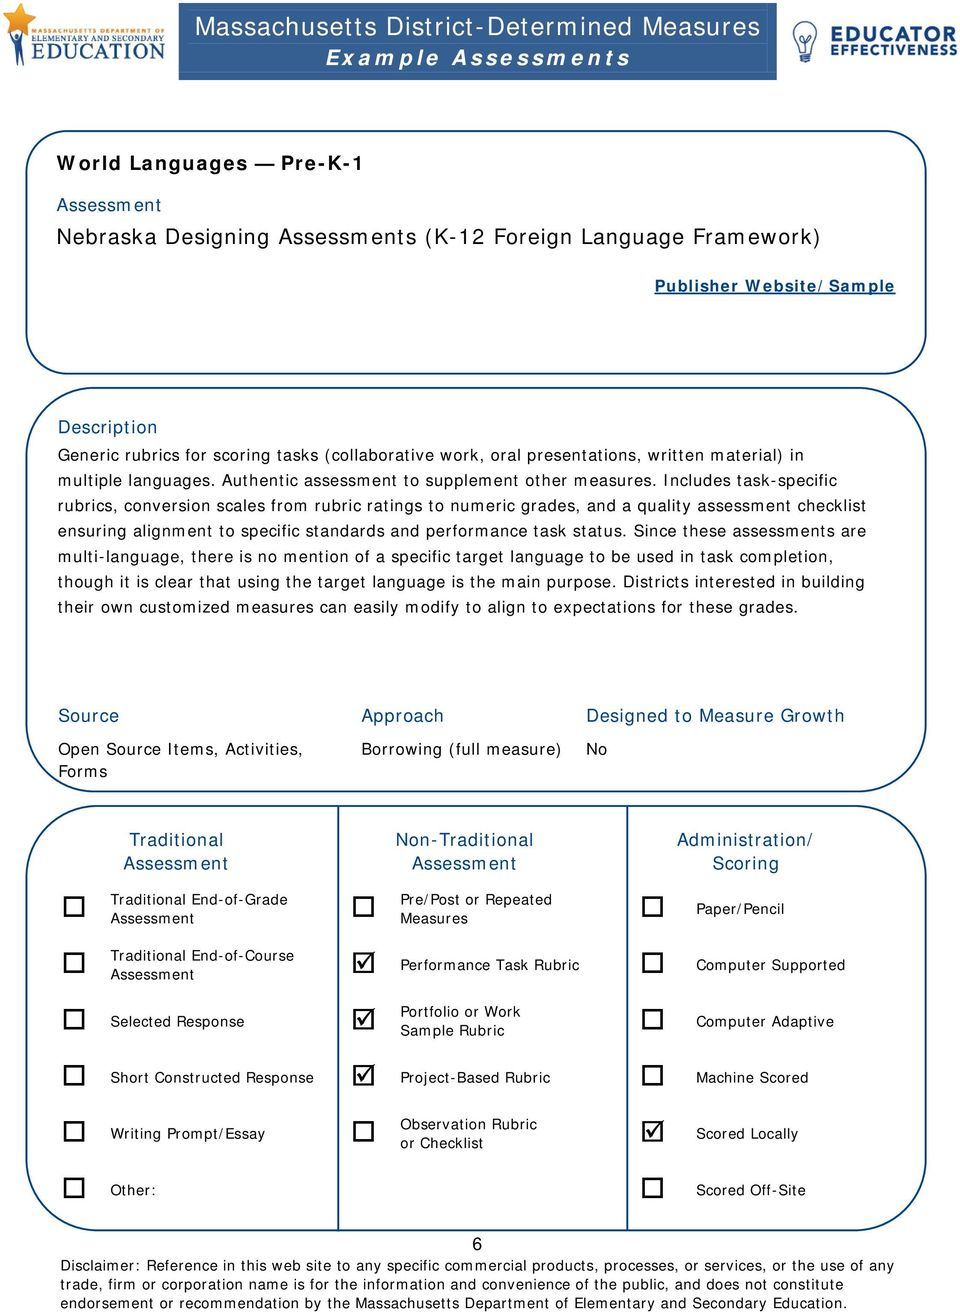 Includes task-specific rubrics, conversion scales from rubric ratings to numeric grades, and a quality assessment checklist ensuring alignment to specific standards and performance task status.